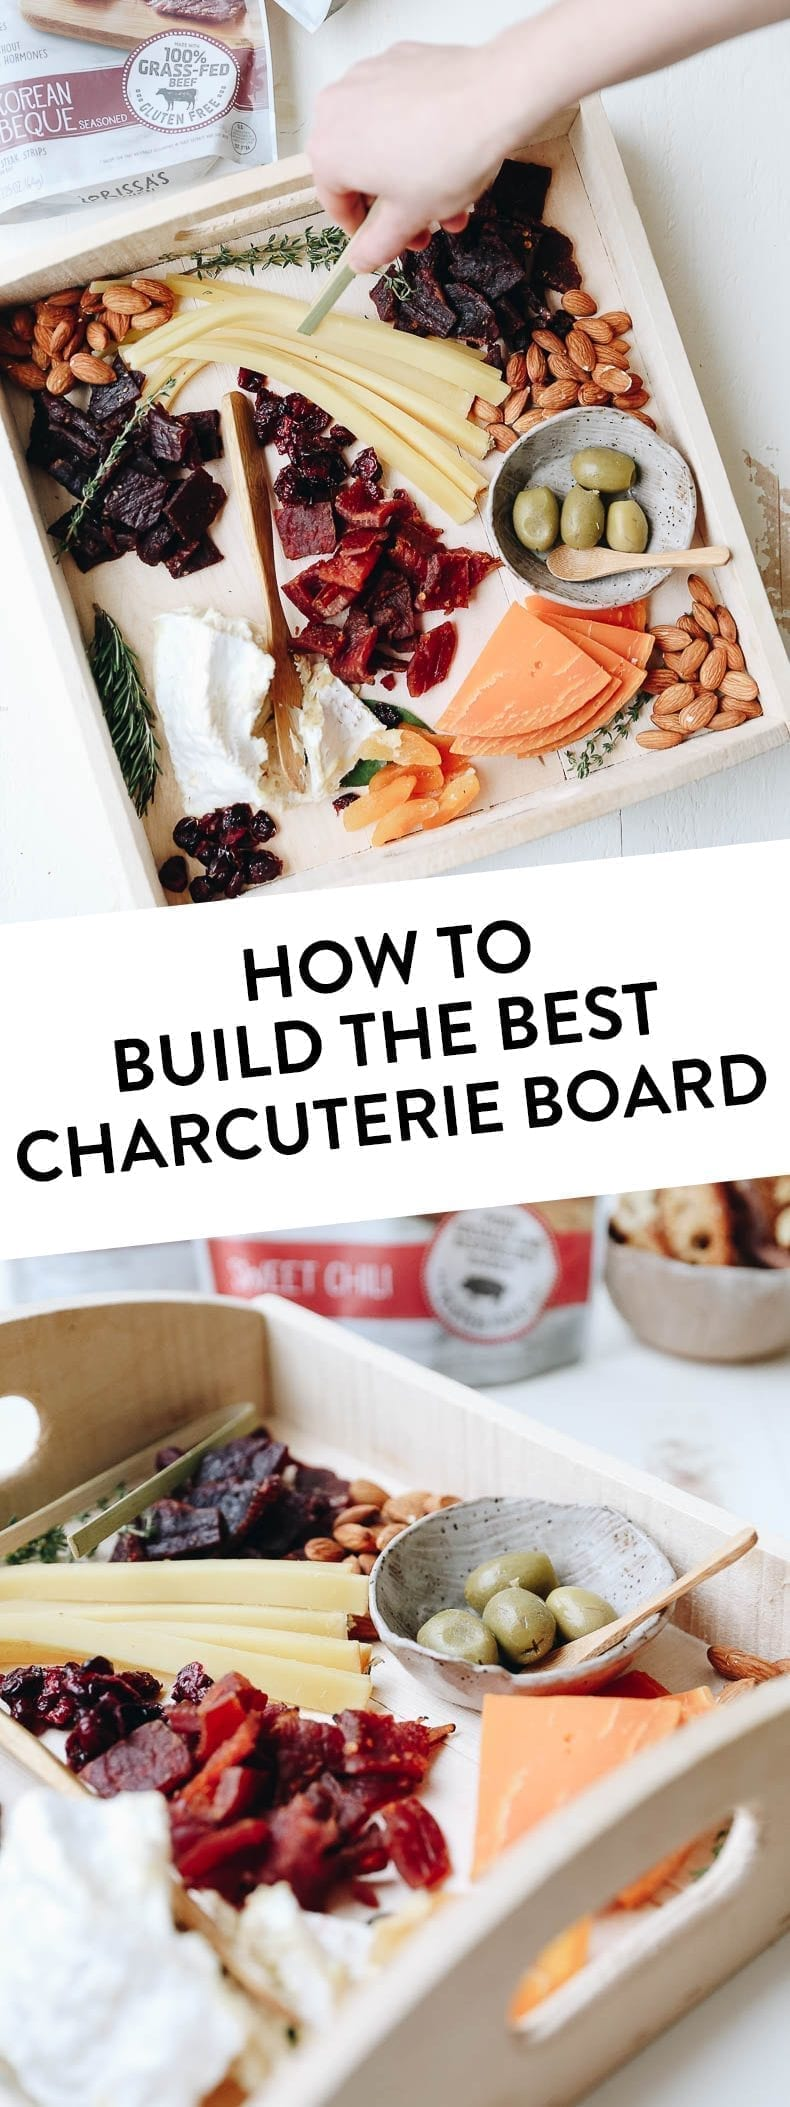 Ever wonder how to create the best charcuterie board? This tutorial walks you through my no-fail steps, the first being finding quality meat which is made easy thanks to Lorissa's Kitchen!